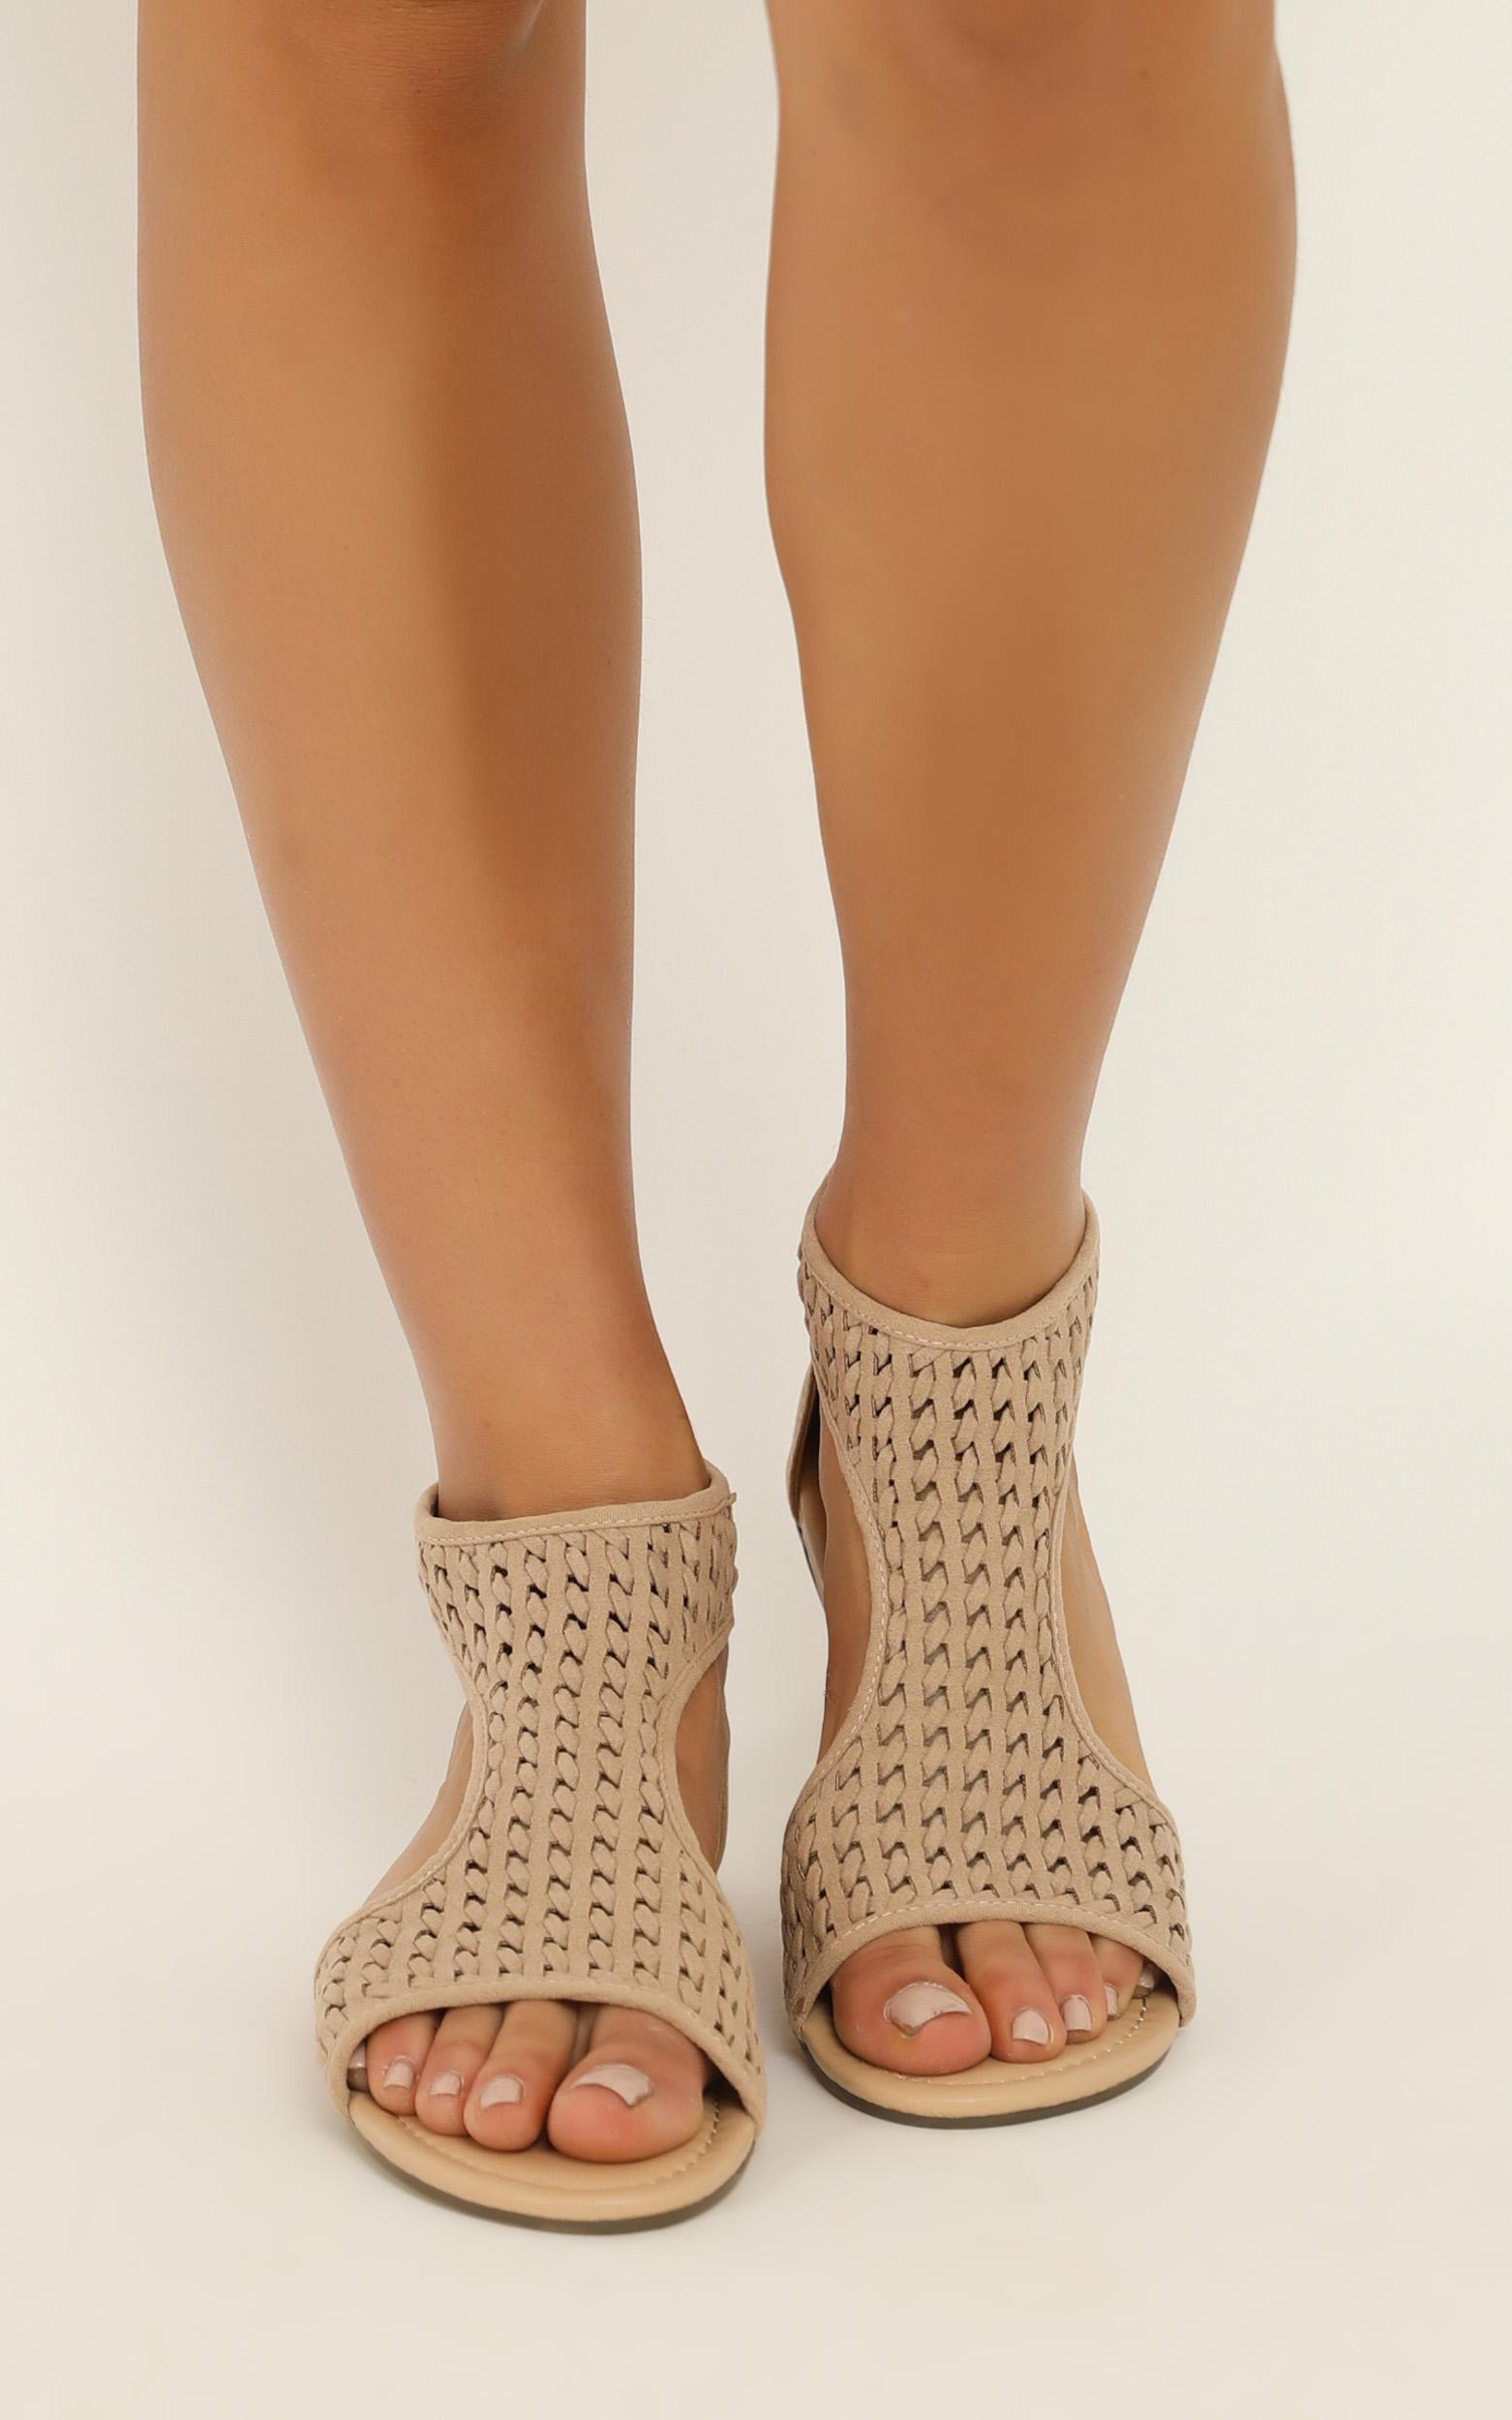 Therapy - La Boca Sandals in cashew micro - 9, Beige, hi-res image number null